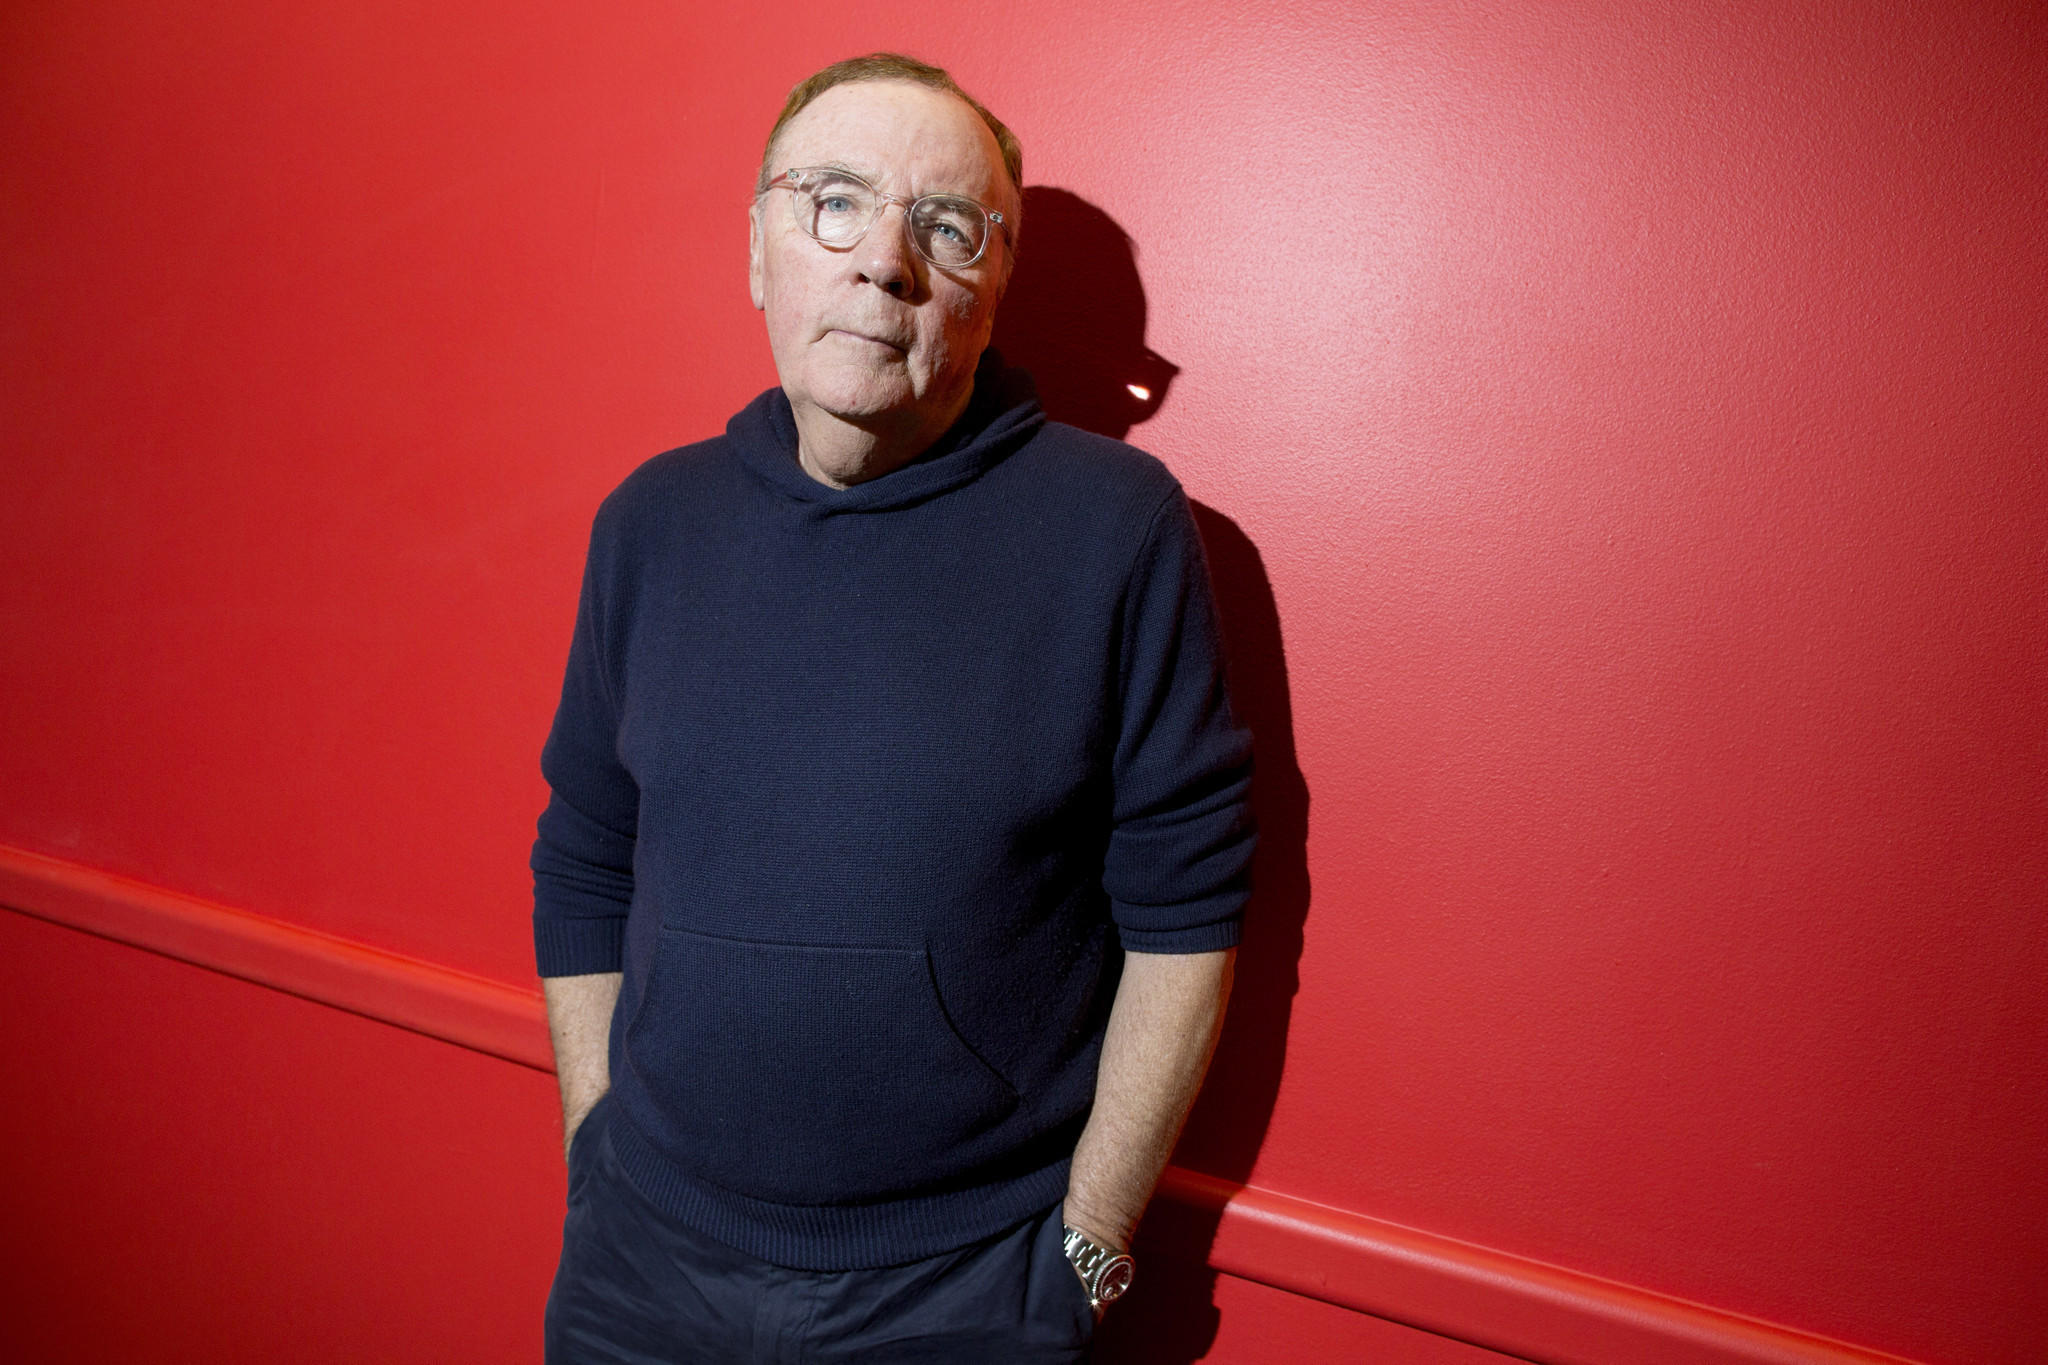 Author James Patterson poses at the Book Expo America convention at the Jacob K. Javits Convention Center in New York on May 31, 2014. Patterson will receive the Chicago Tribune Young Adult Literary Prize at this year's Printers Row Lit Fest.